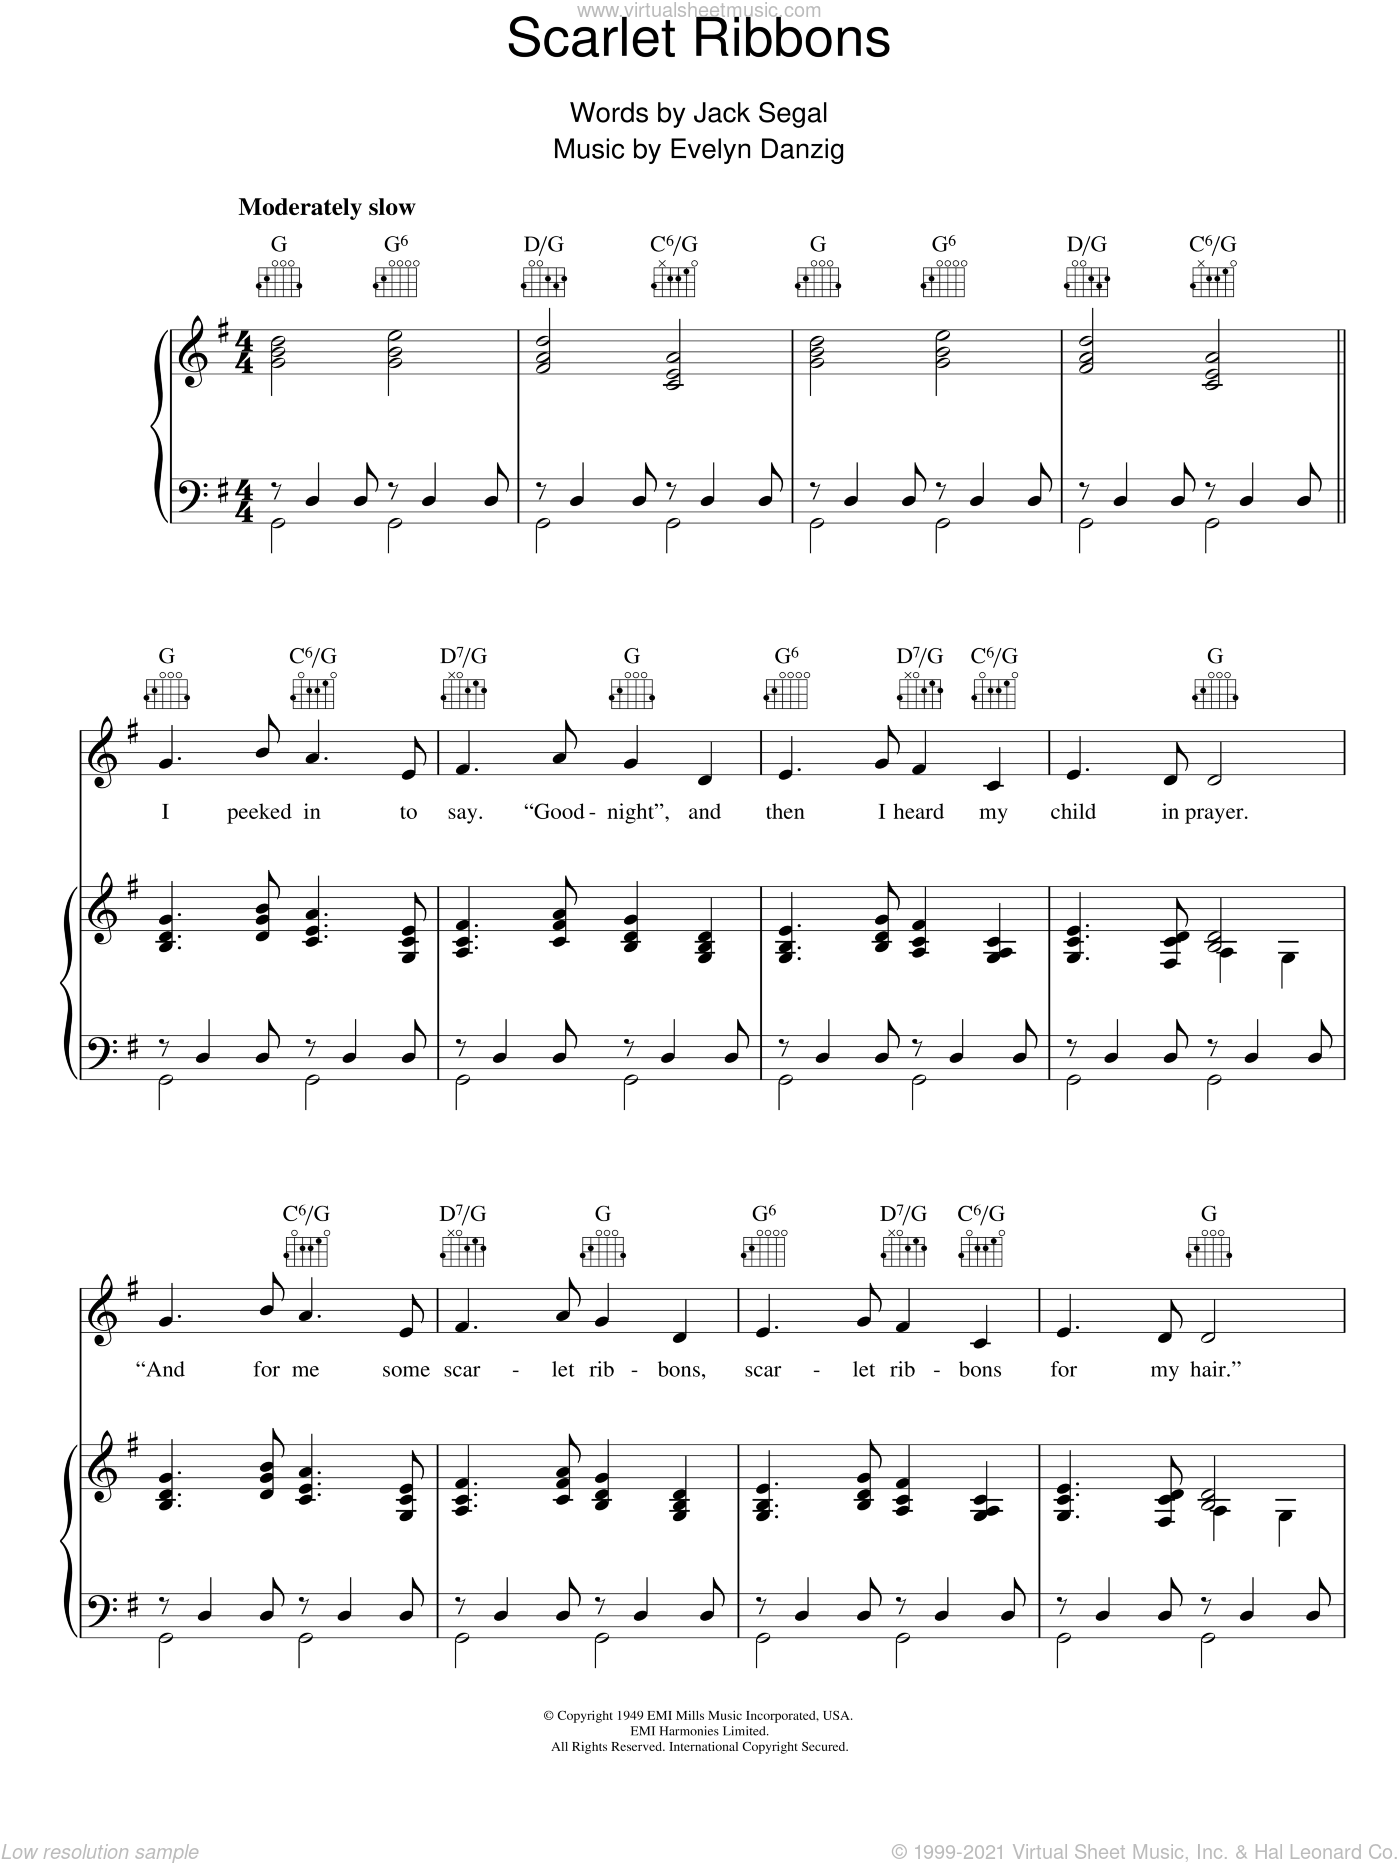 Scarlet Ribbons sheet music for voice, piano or guitar by Evelyn Danzig and Jack Segal, intermediate voice, piano or guitar. Score Image Preview.